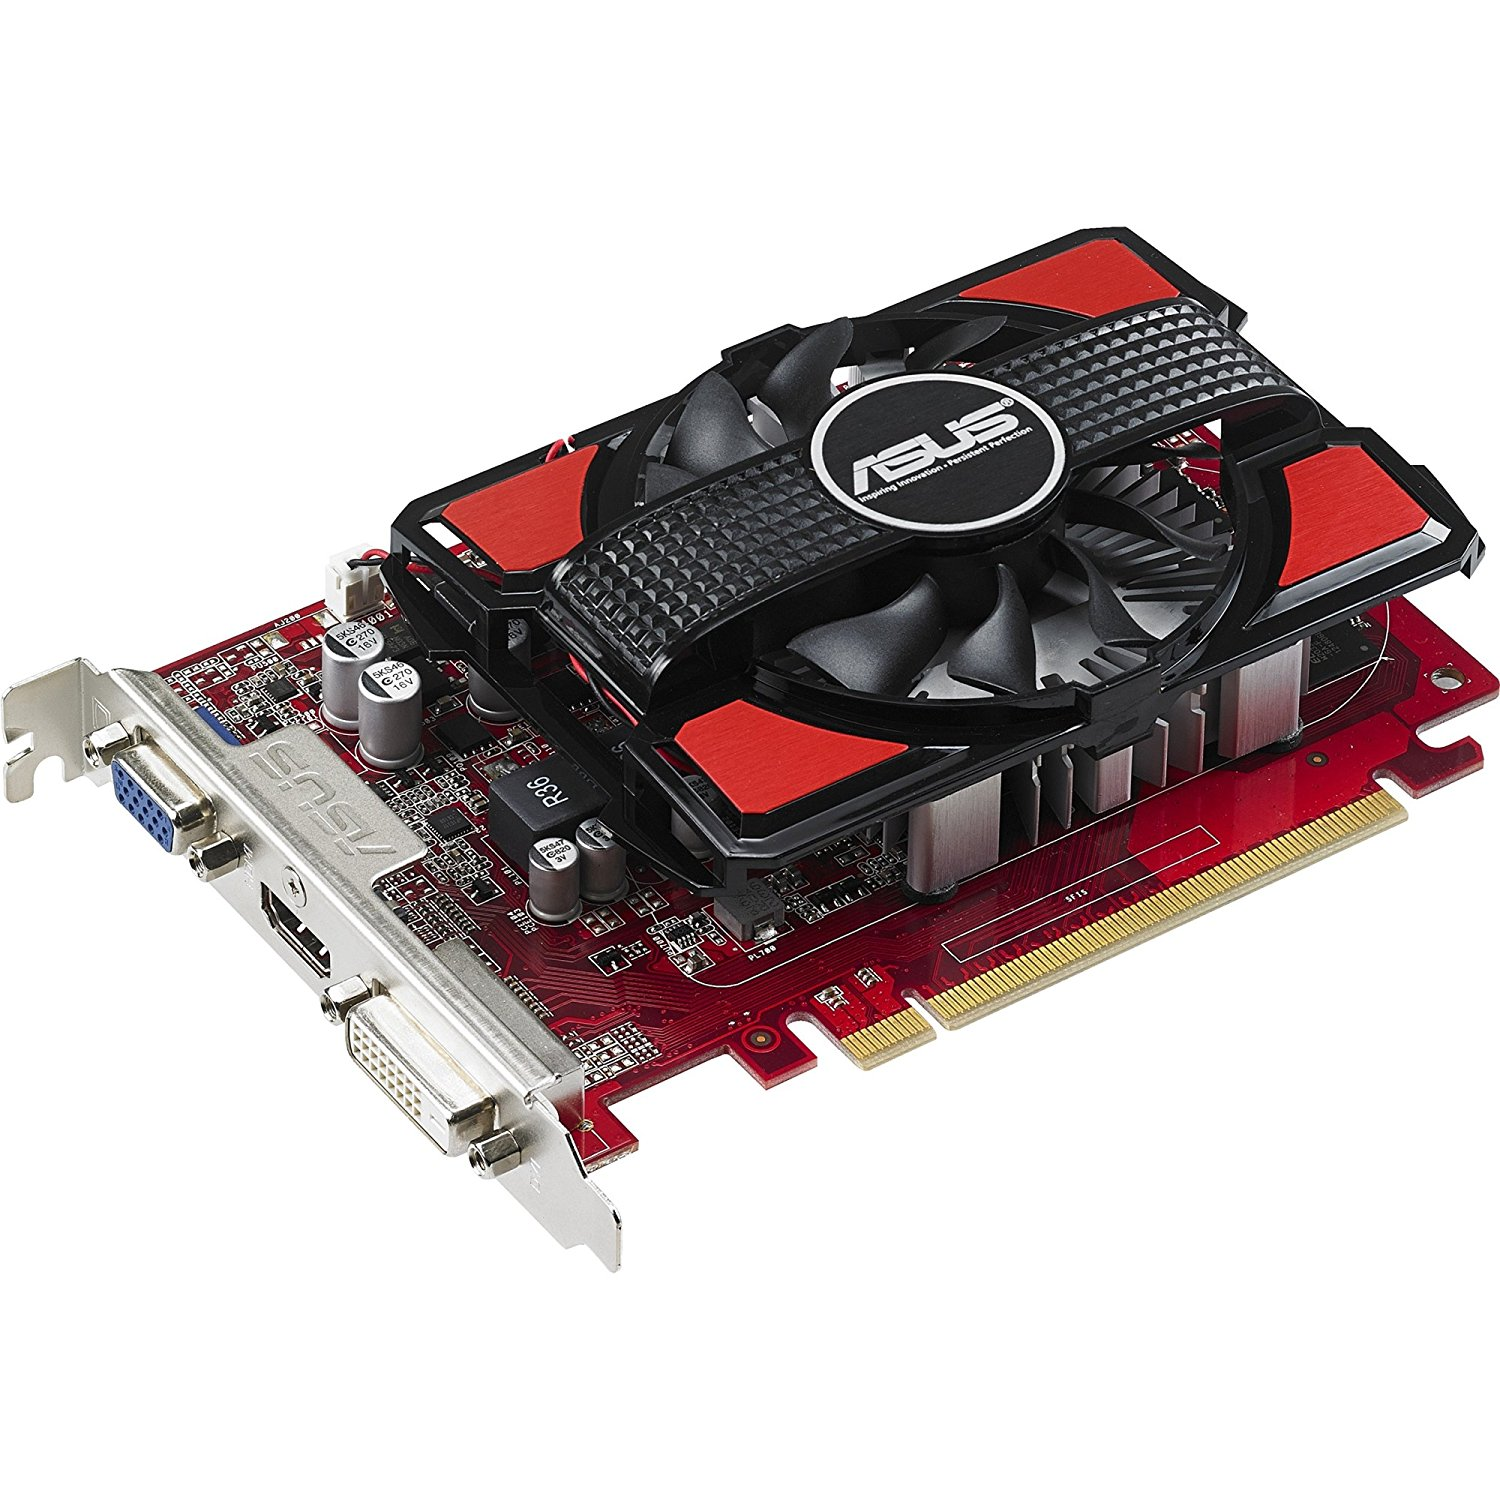 """Asus R7250-1Gd5 - Graphics Card - Radeon R7 250 - 1 Gb Gddr5 - Pci Express 3.0 - Dvi, D-Sub, Hdmi """"Product Type: Computer Components/Video Cards & Adapters"""""""